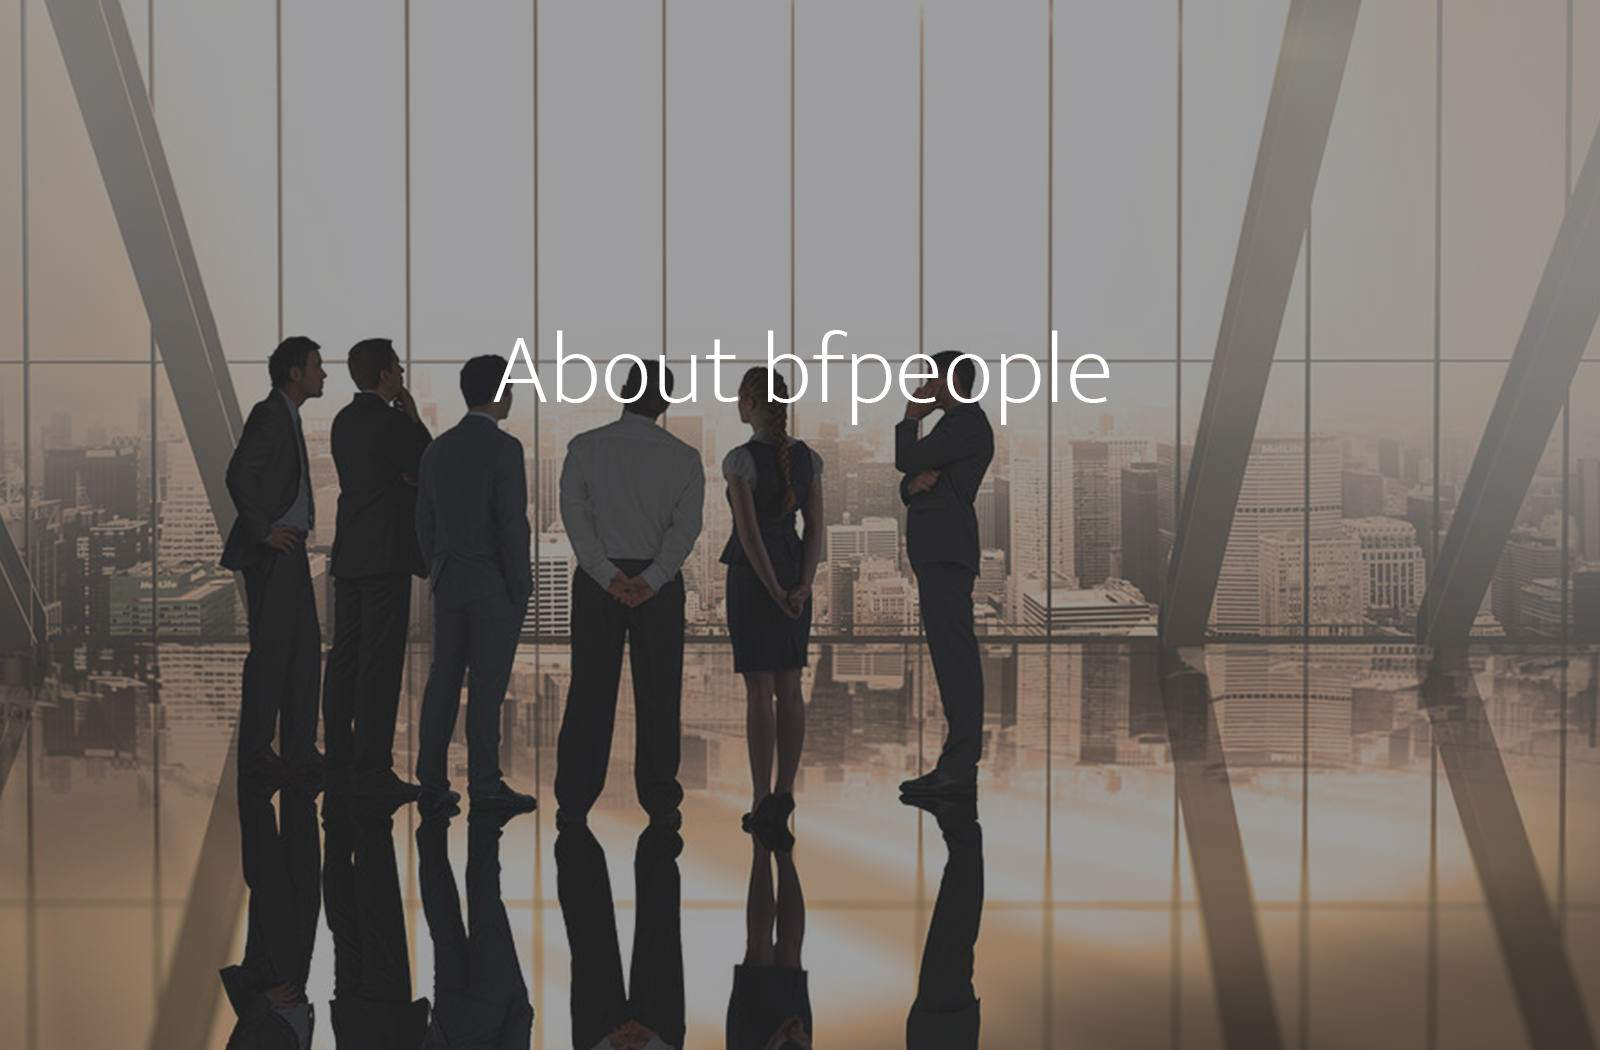 About bfpeople